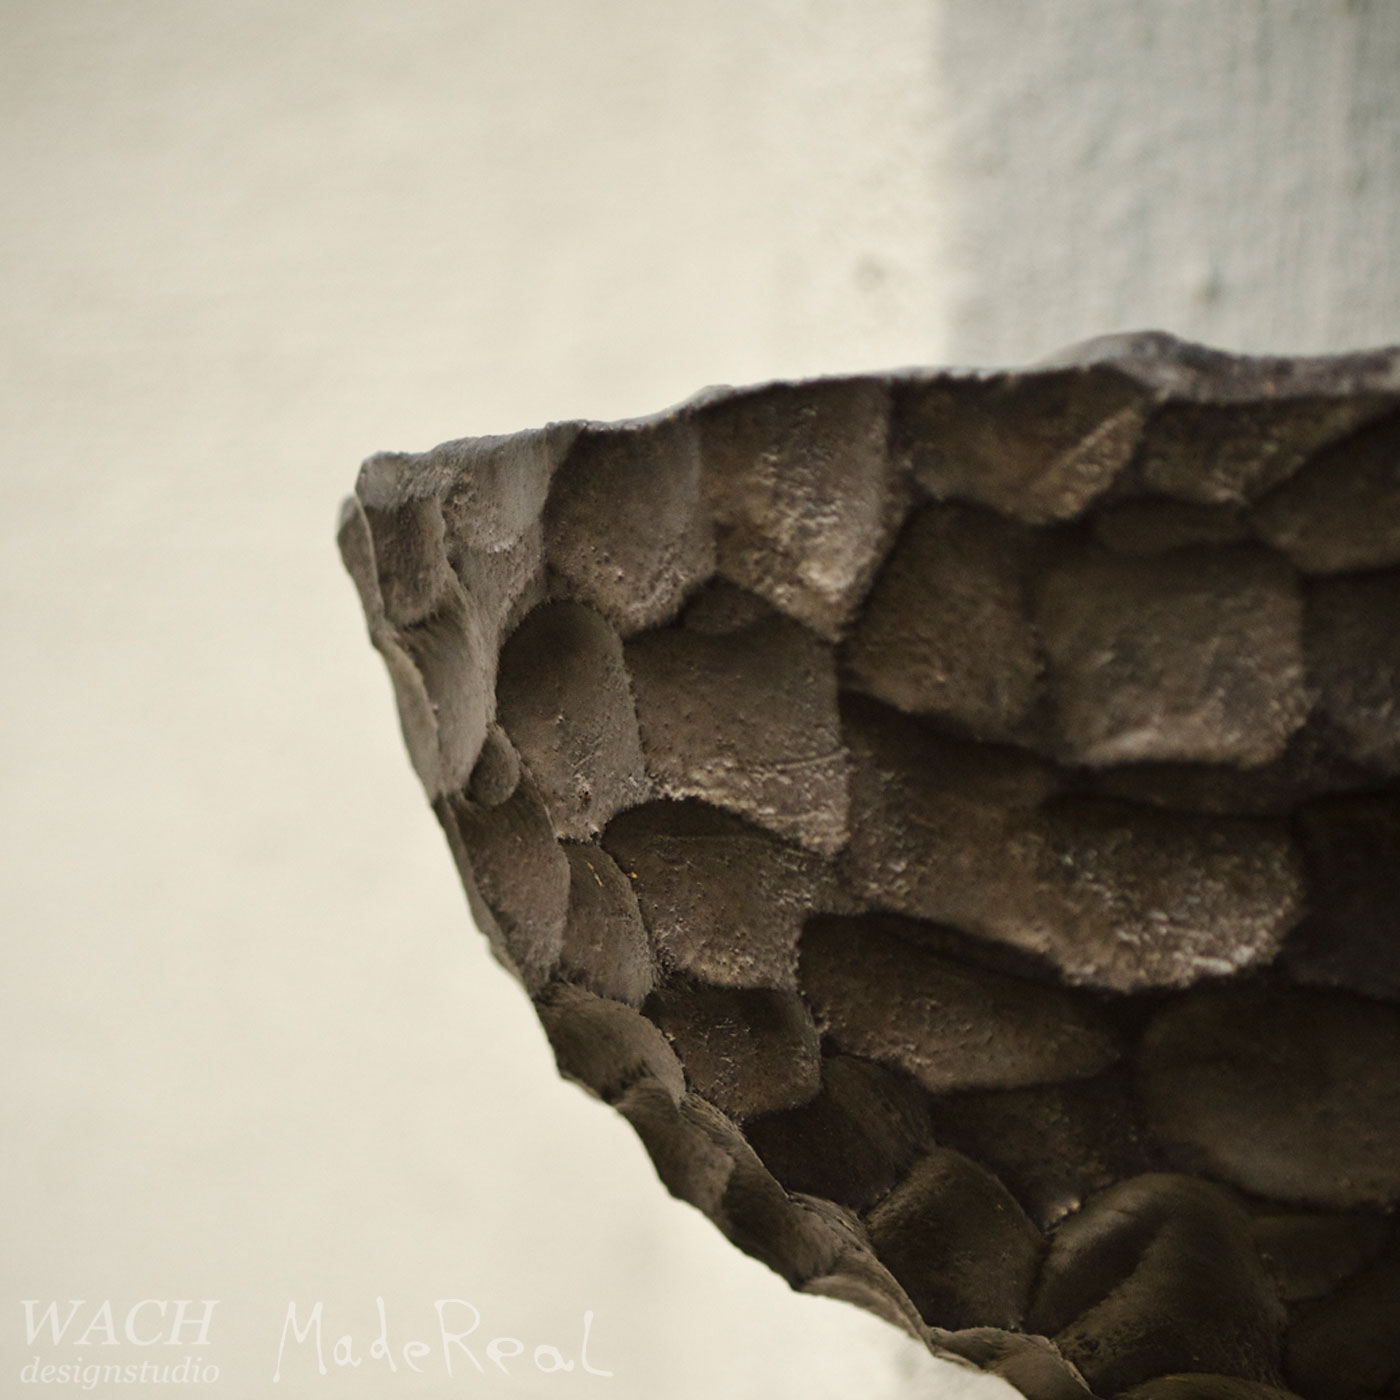 Detailed view at the MadeReal Carved Ceramics Bowl surface crafted by Anna R Kinman